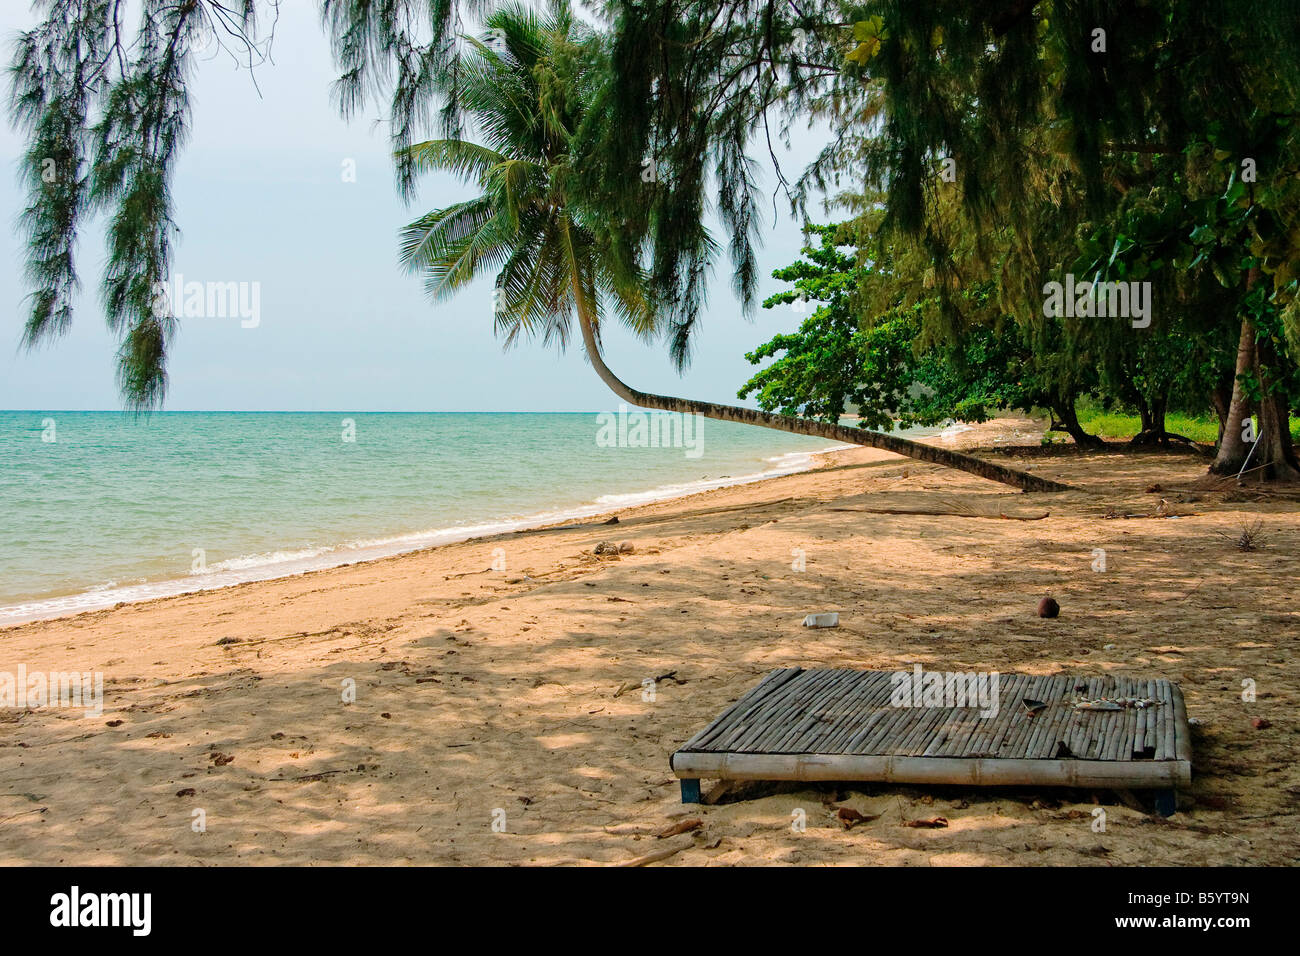 Asia sand beach romantic place relax - Stock Image